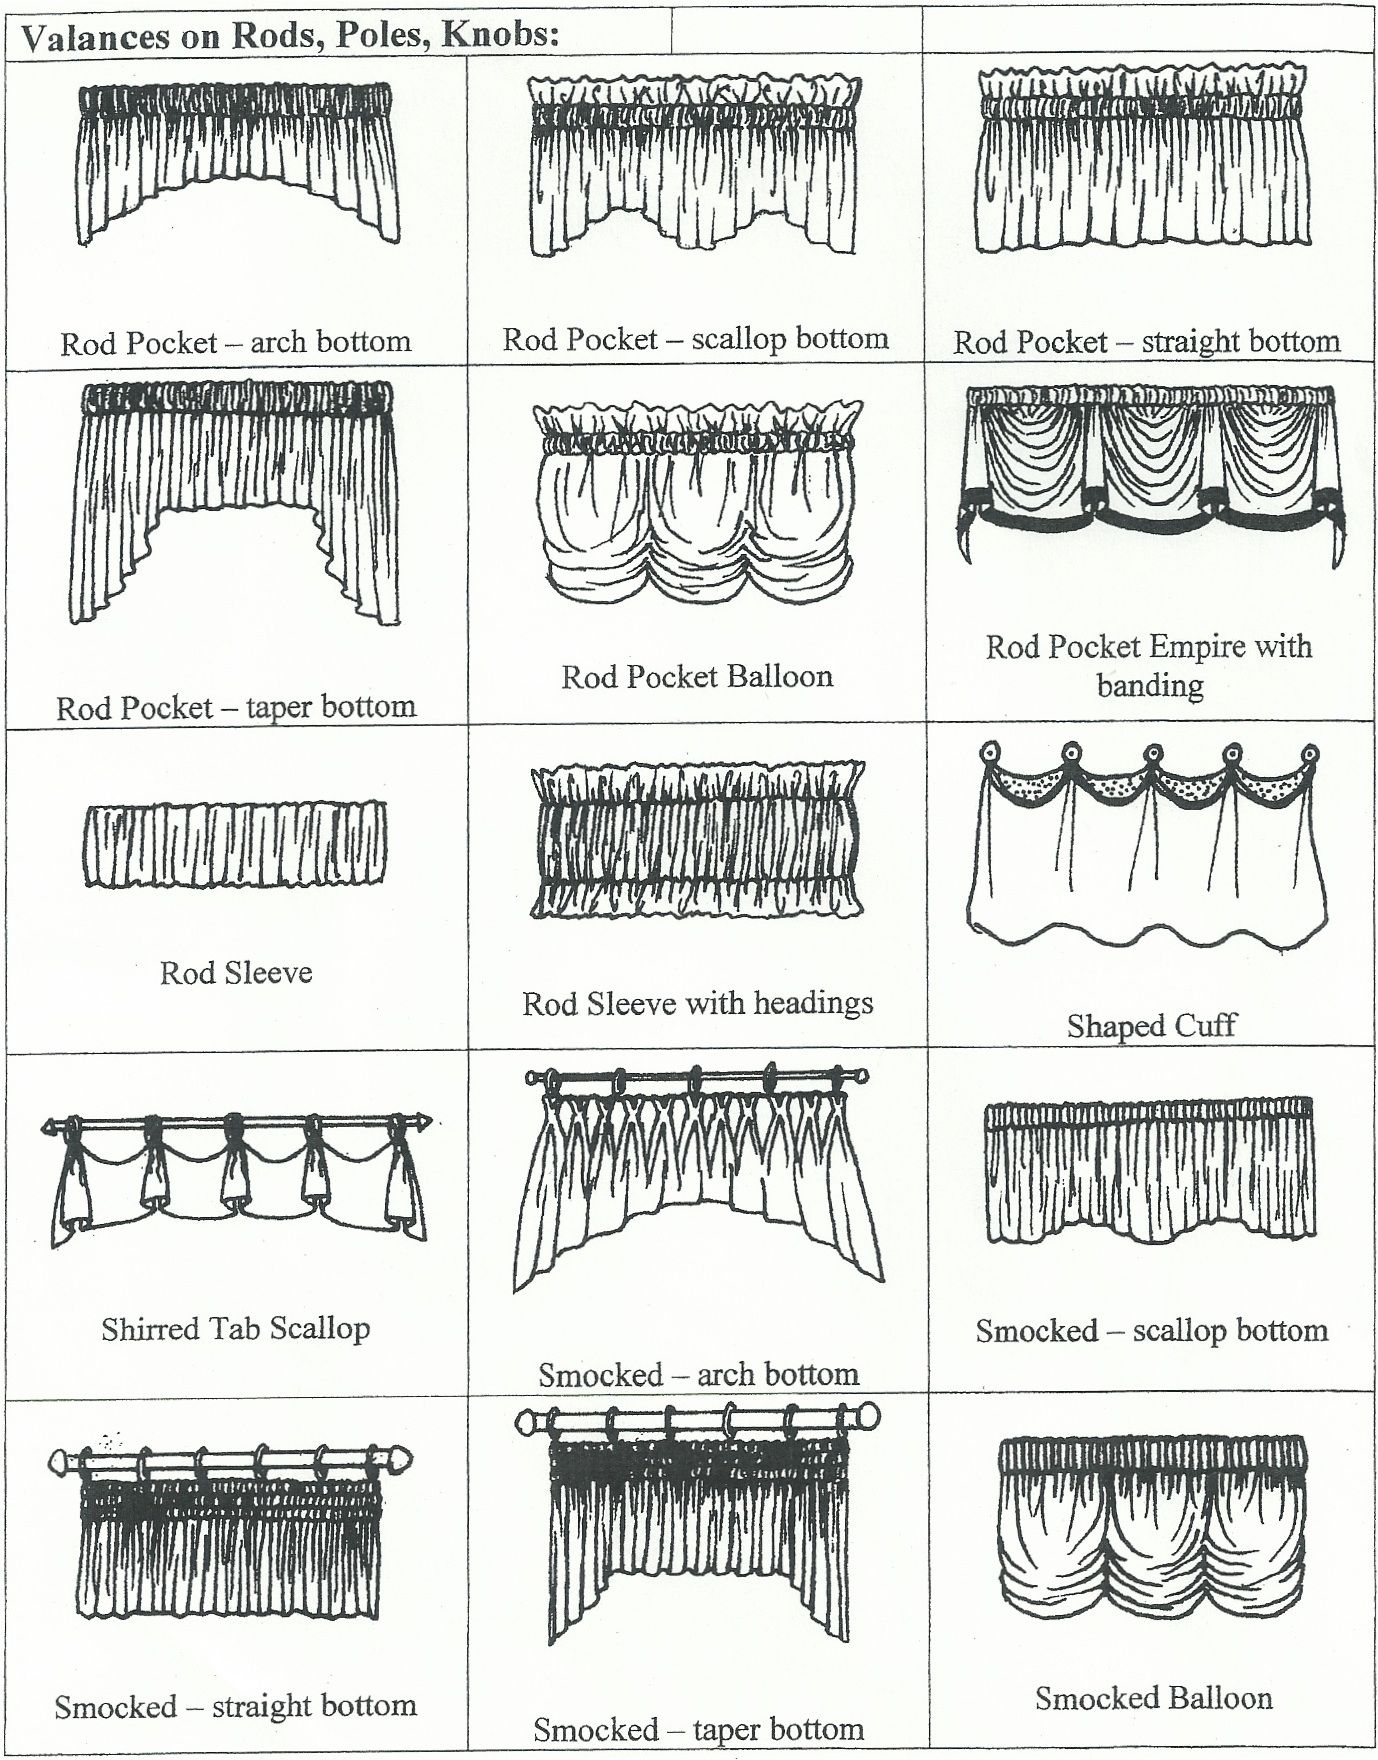 Types of curtains styles - Something As Simple As Curtains Can Make Or Break Your Custom Hotel Room Decor Rina Can Help You Decide What Color Style And Fabric Your Custom Curtains